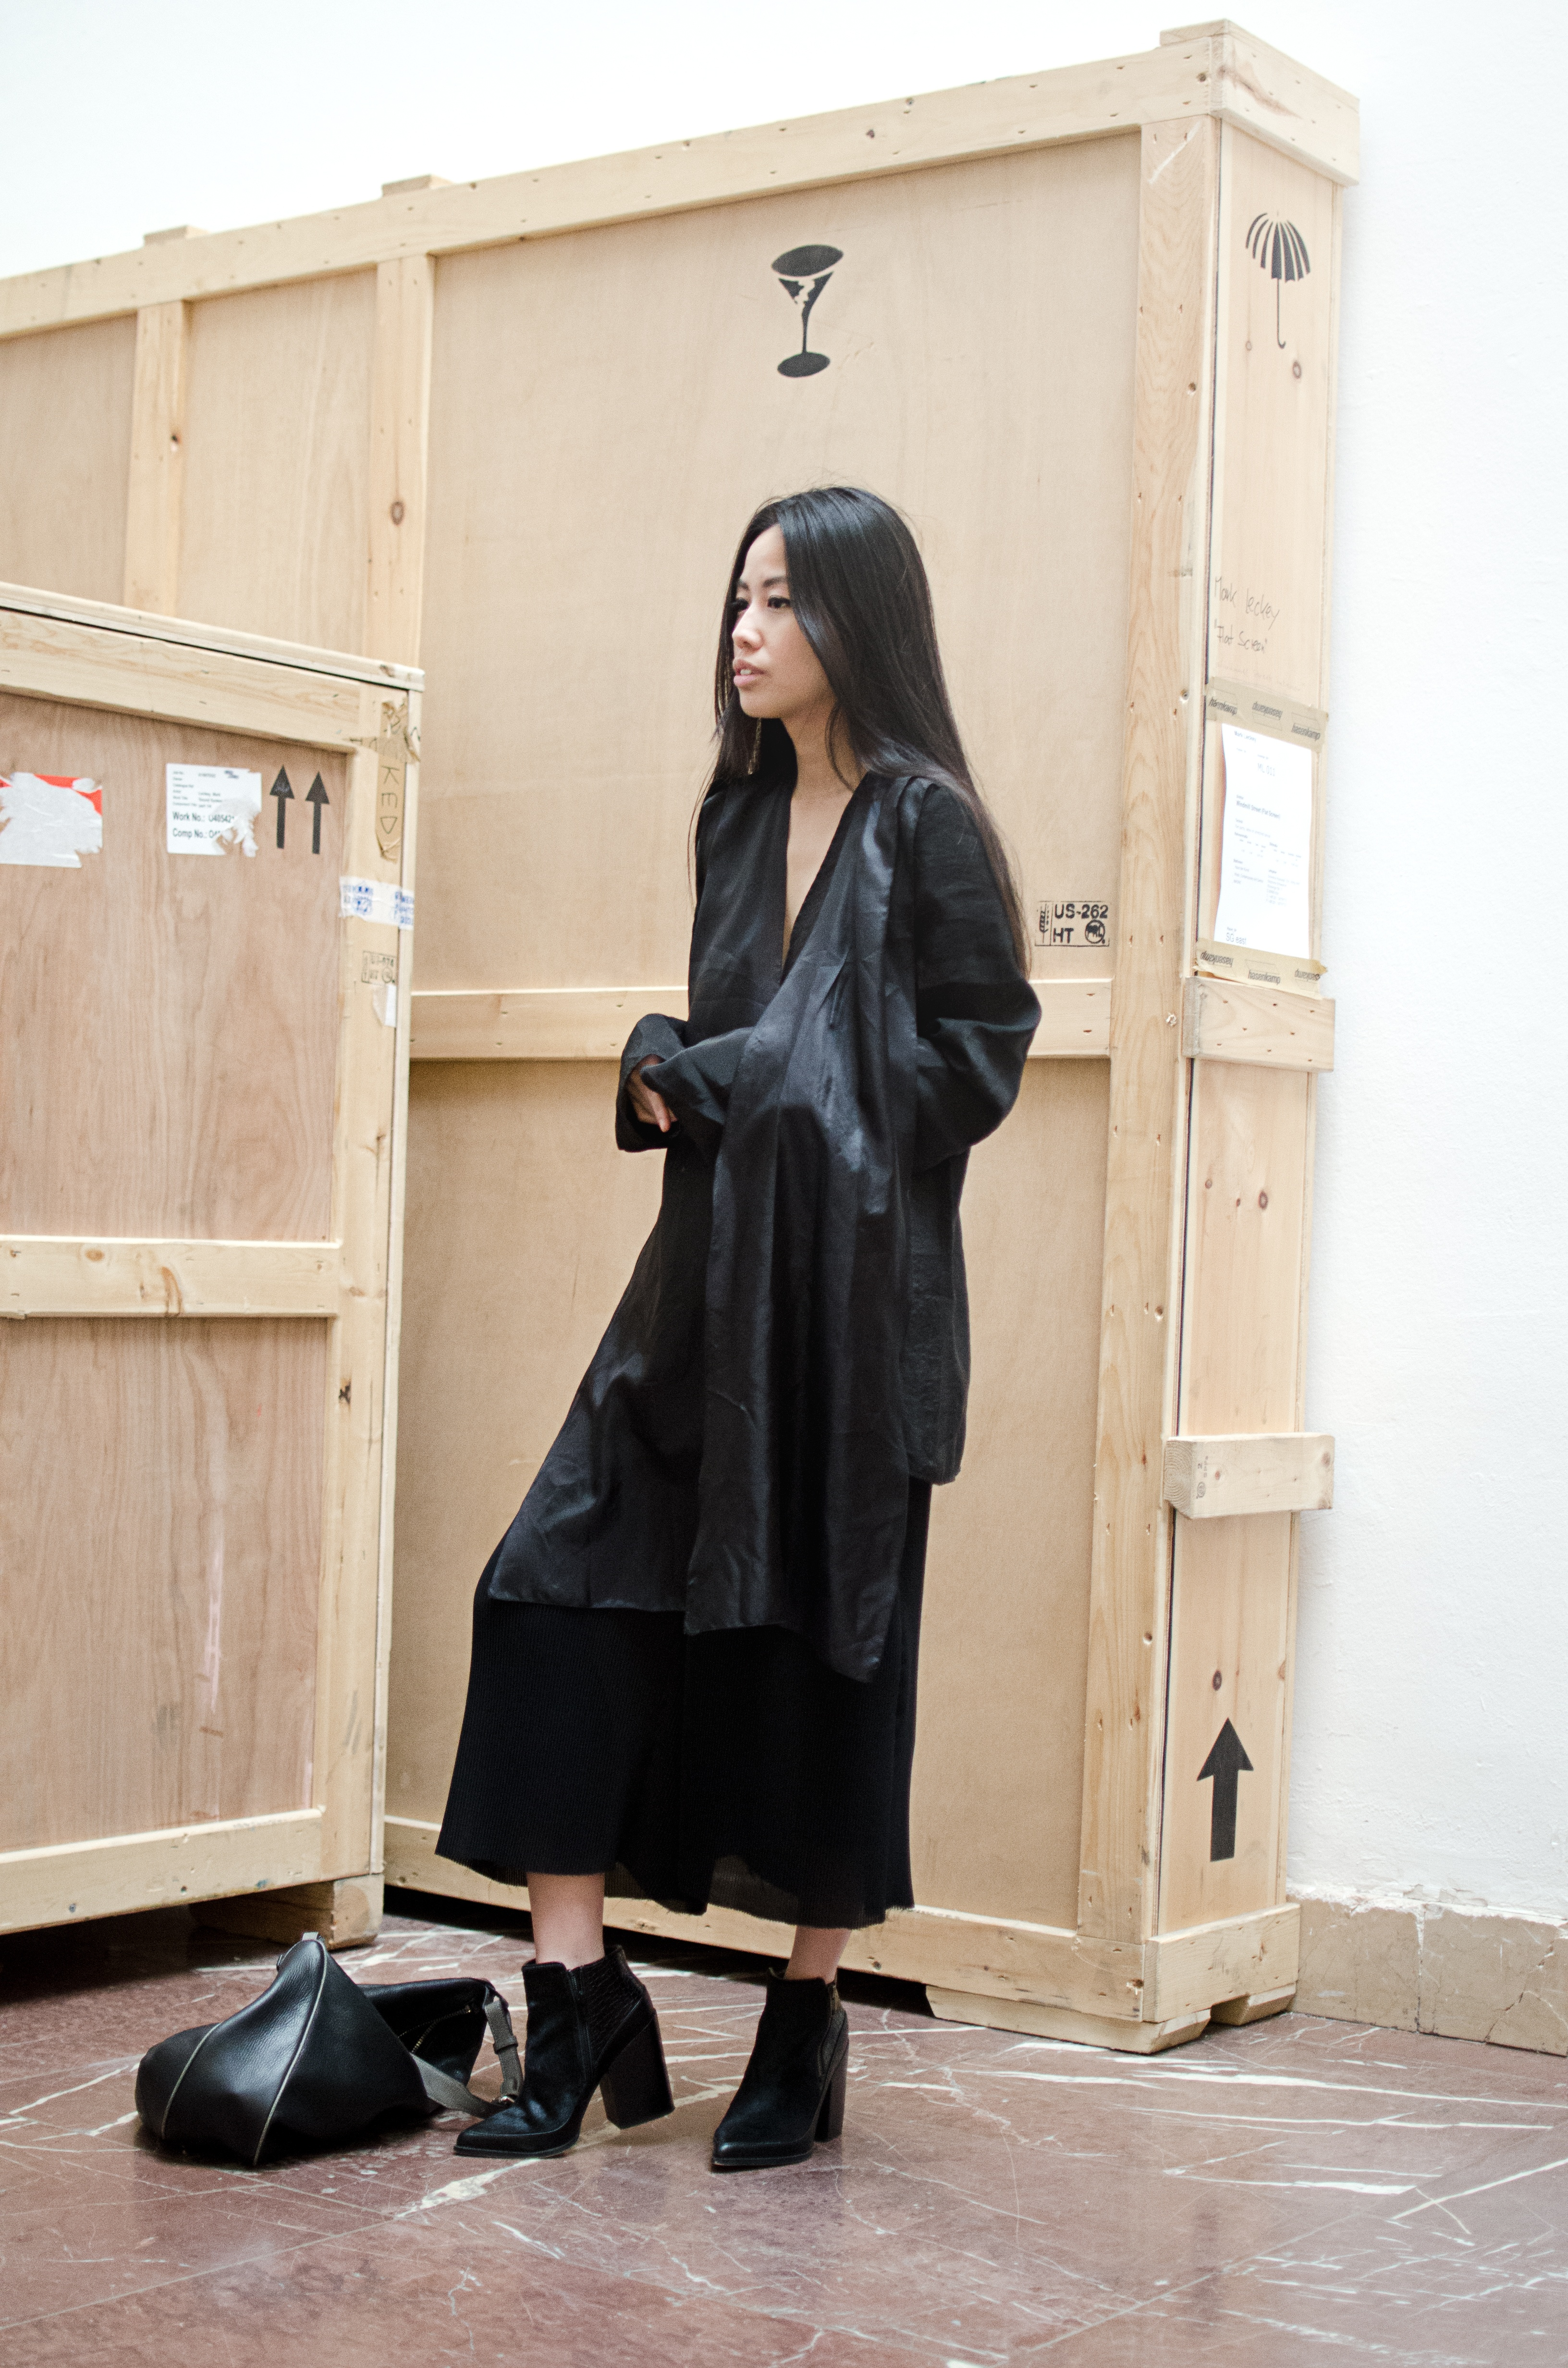 IHEARTALICE.DE – Fashion & Travel-Blog by Alice M. Huynh from Berlin/Germany: All black Everything Look wearing Alice M. Huynh Silk Blouse, Oversize Pants, Boots / OOTD